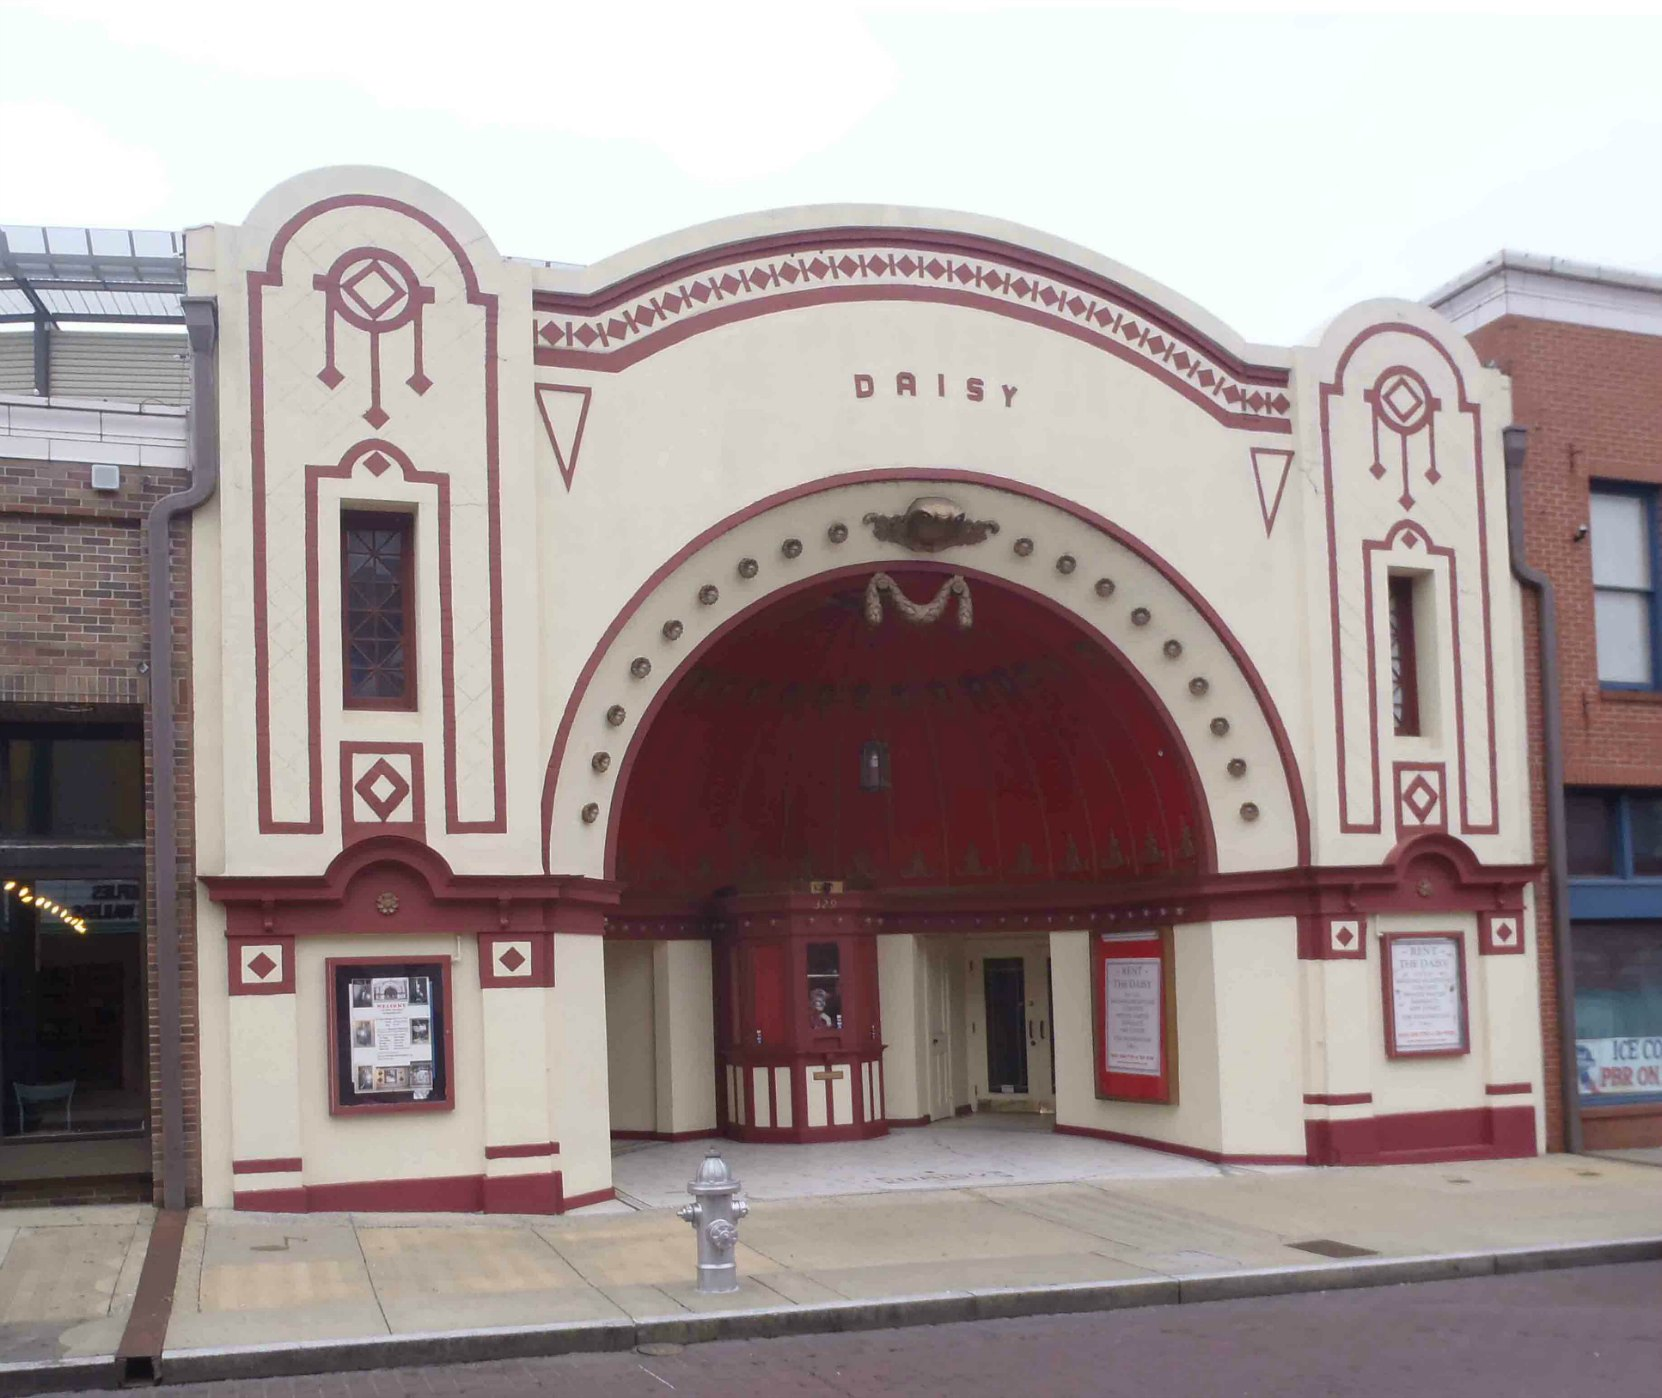 The Daisy Theatre, 329 Beale Street, Memphis, Tennessee